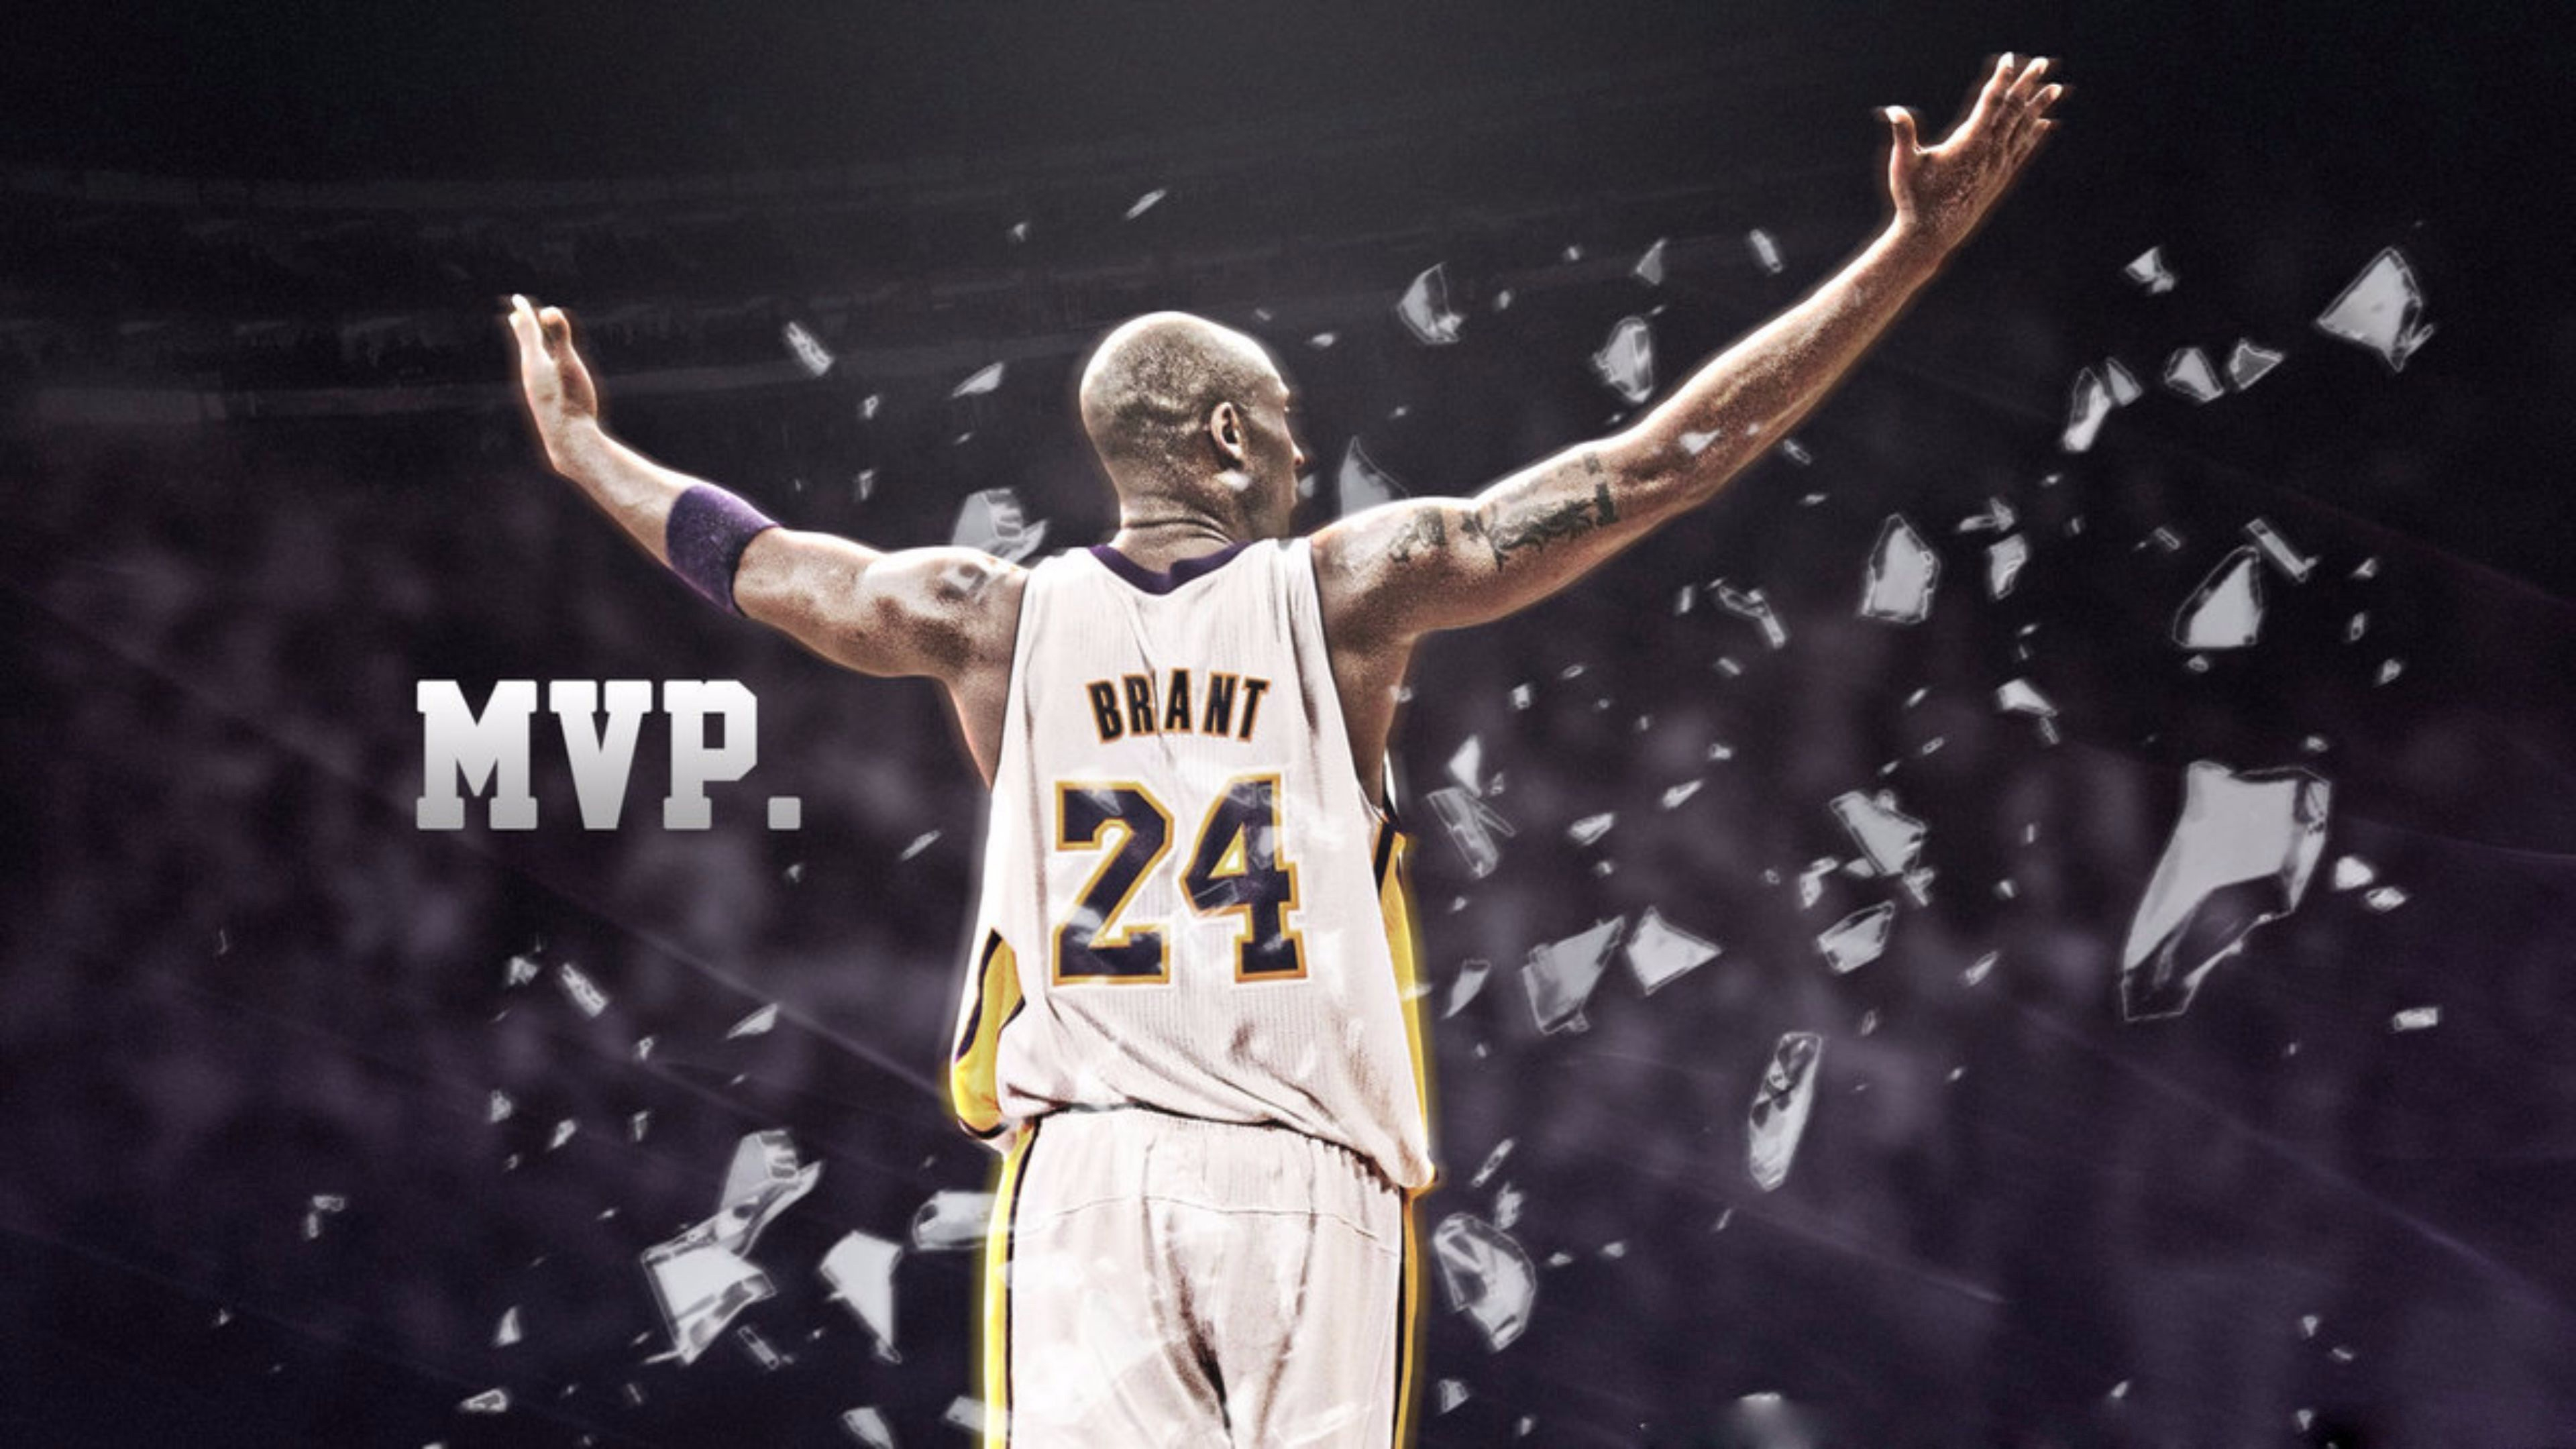 Kobe Bryant Jersey Wallpaper 8 And 24 Twice The Honor Lakers To Retire Both Kobe Jersey Numbers